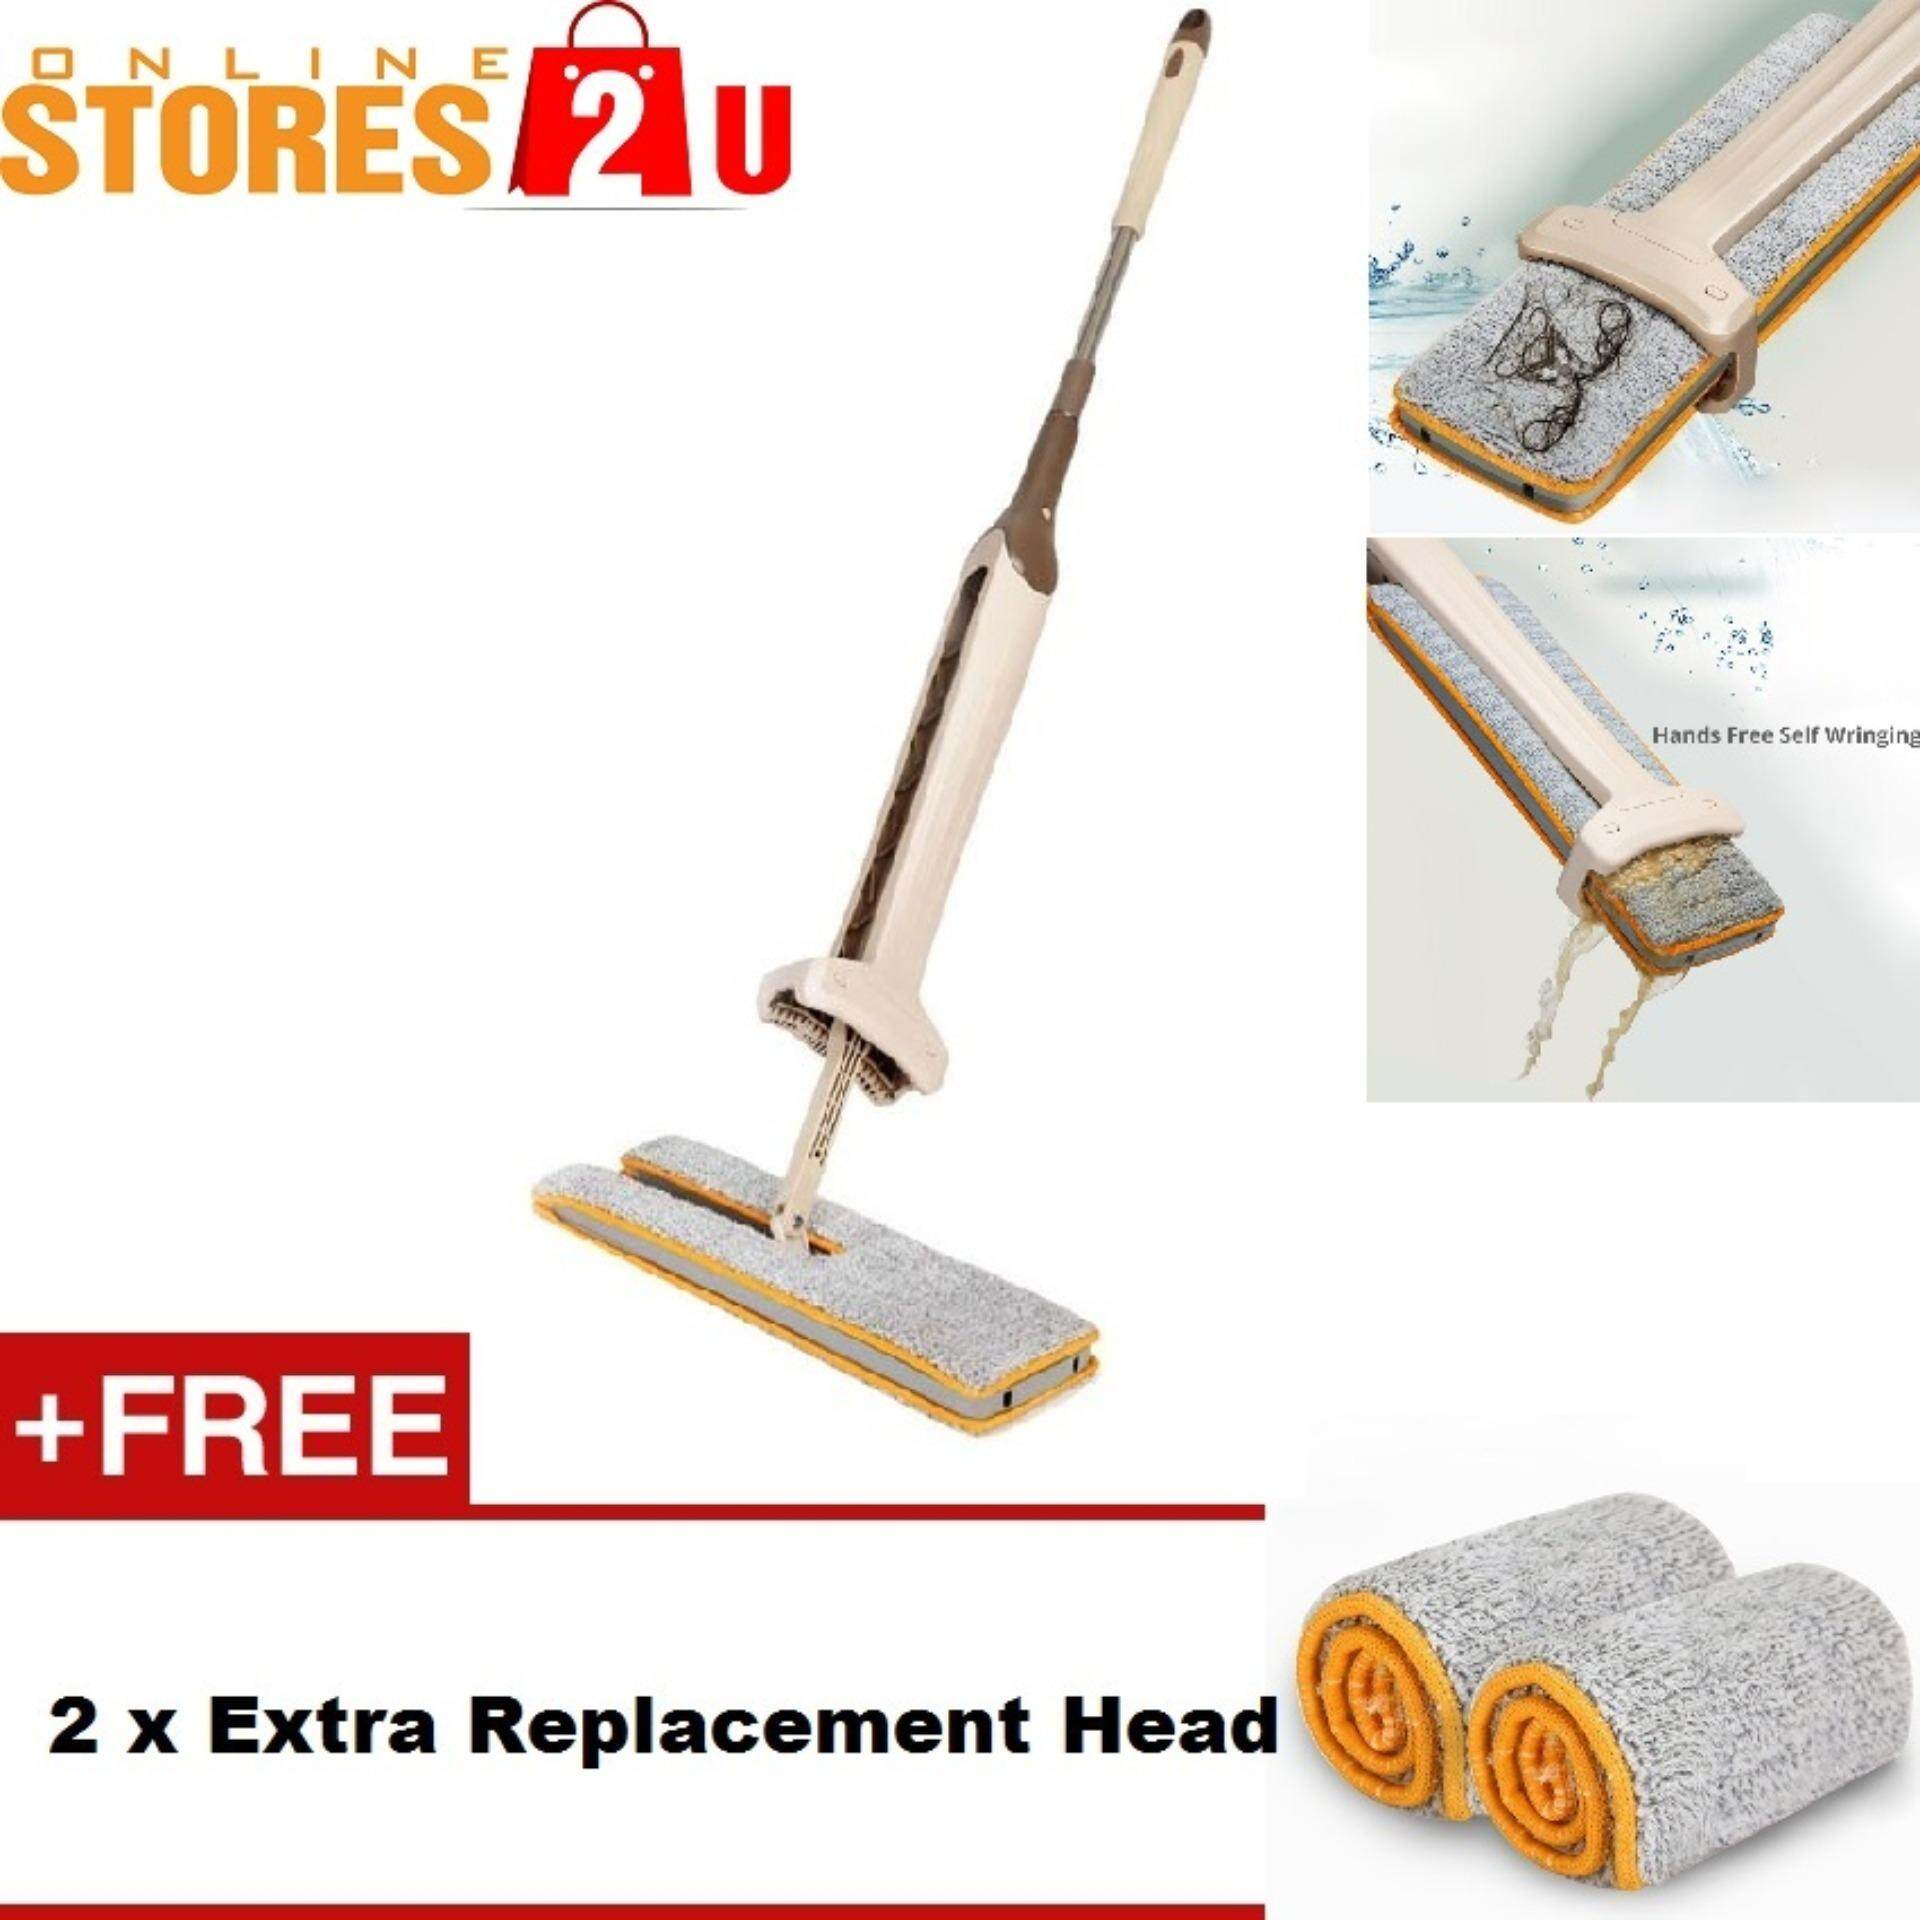 [Stores2u] 38cm Double Sided Hands Free Wash Microfiber Lazy Flat Floor Spin Mop FREE 2pc Extra Absorption Cloth Head